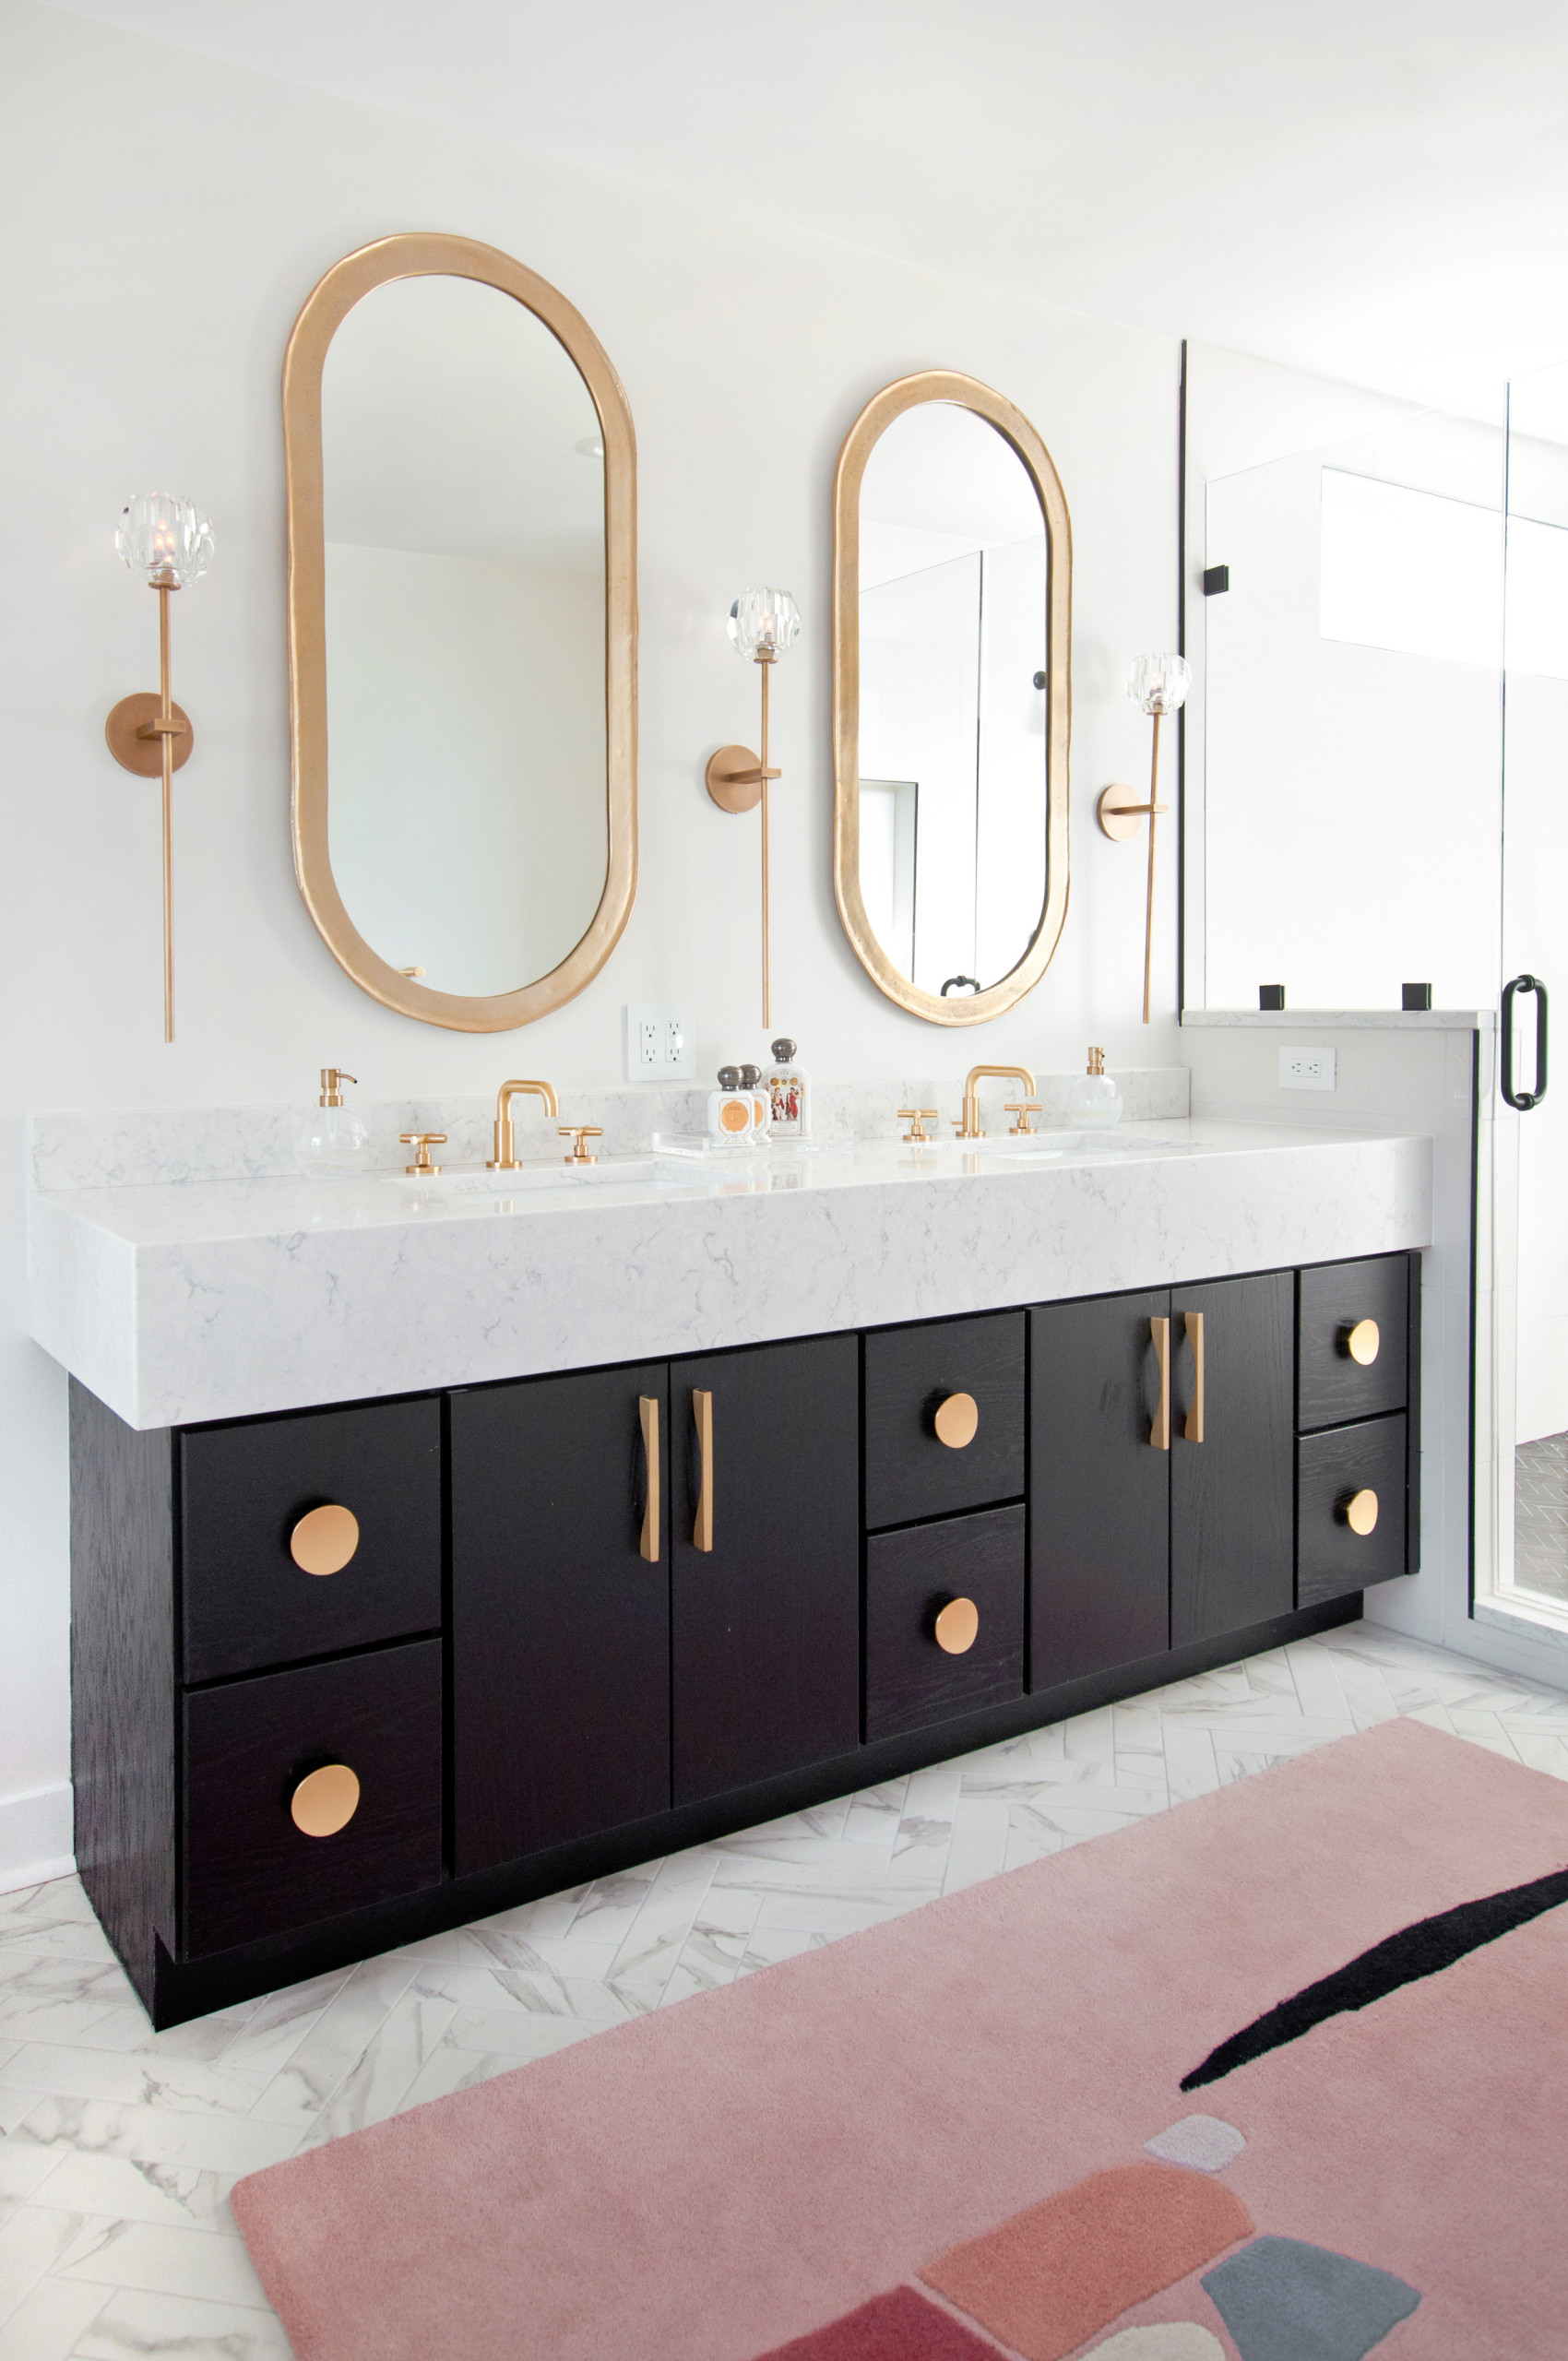 75 Beautiful Pink Bathroom Pictures Ideas August 2021 Houzz